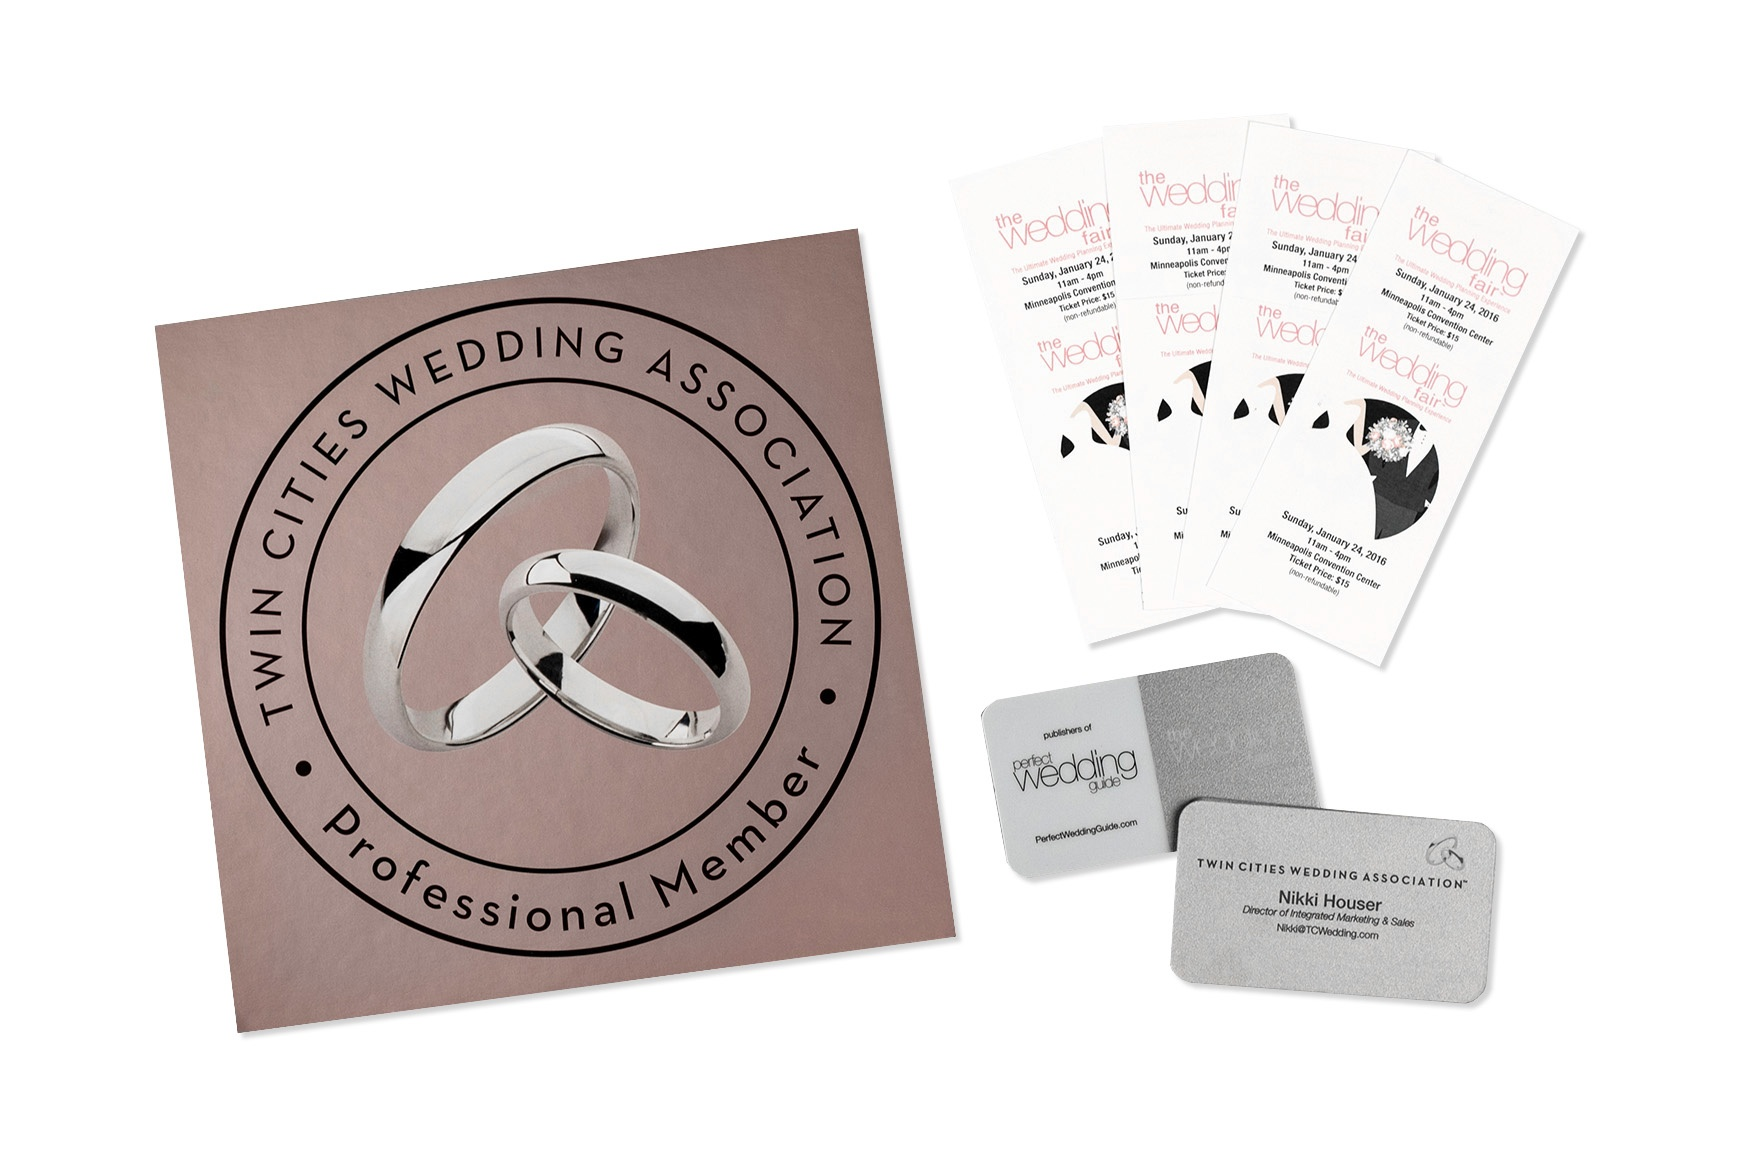 Twin cities wedding association business cards reheart Image collections